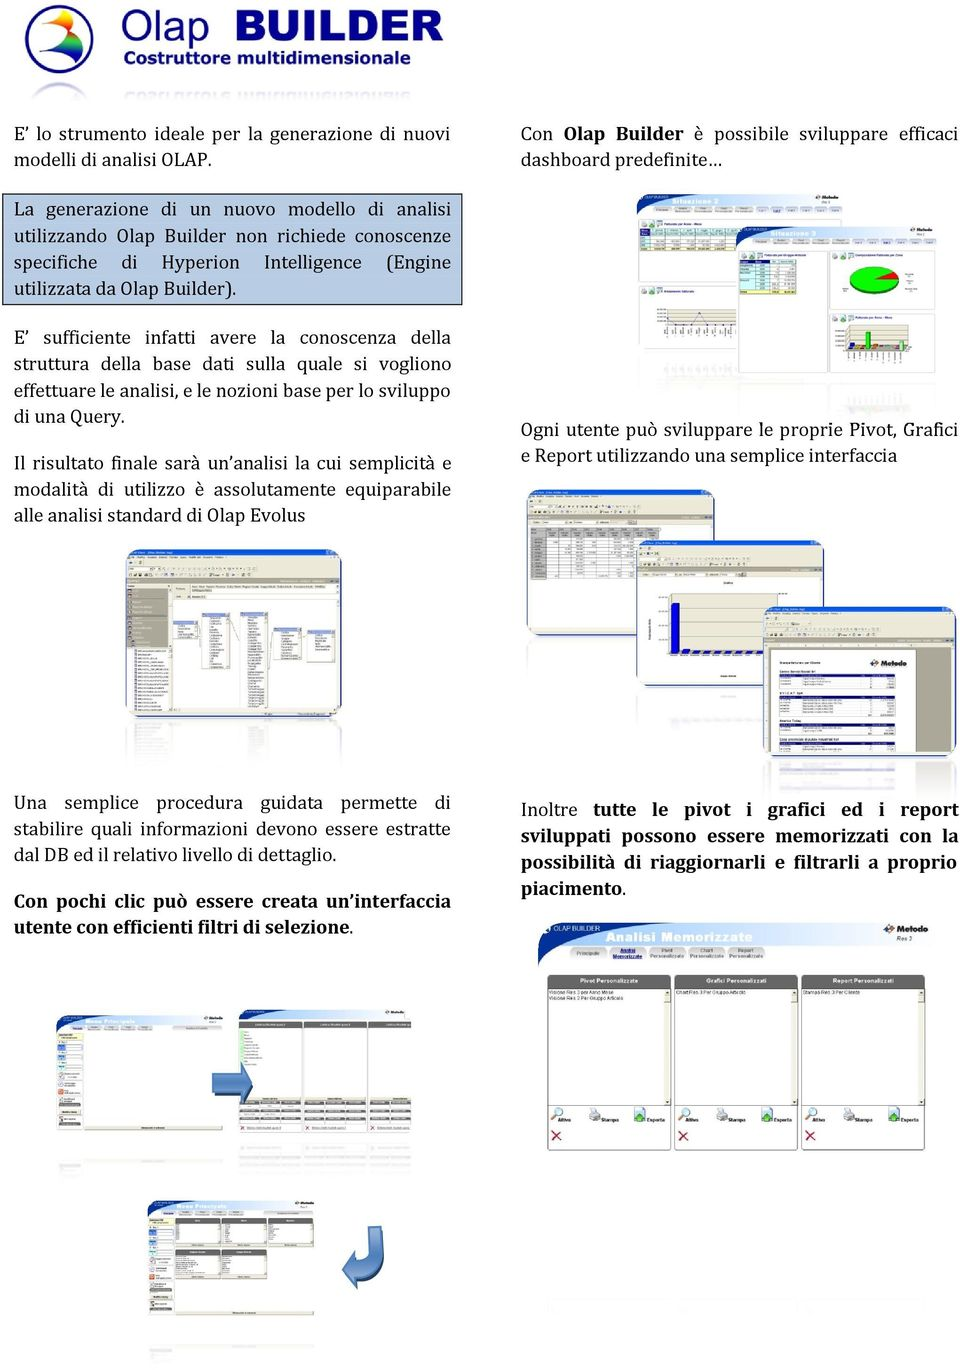 Intelligence (Engine utilizzata da Olap Builder).